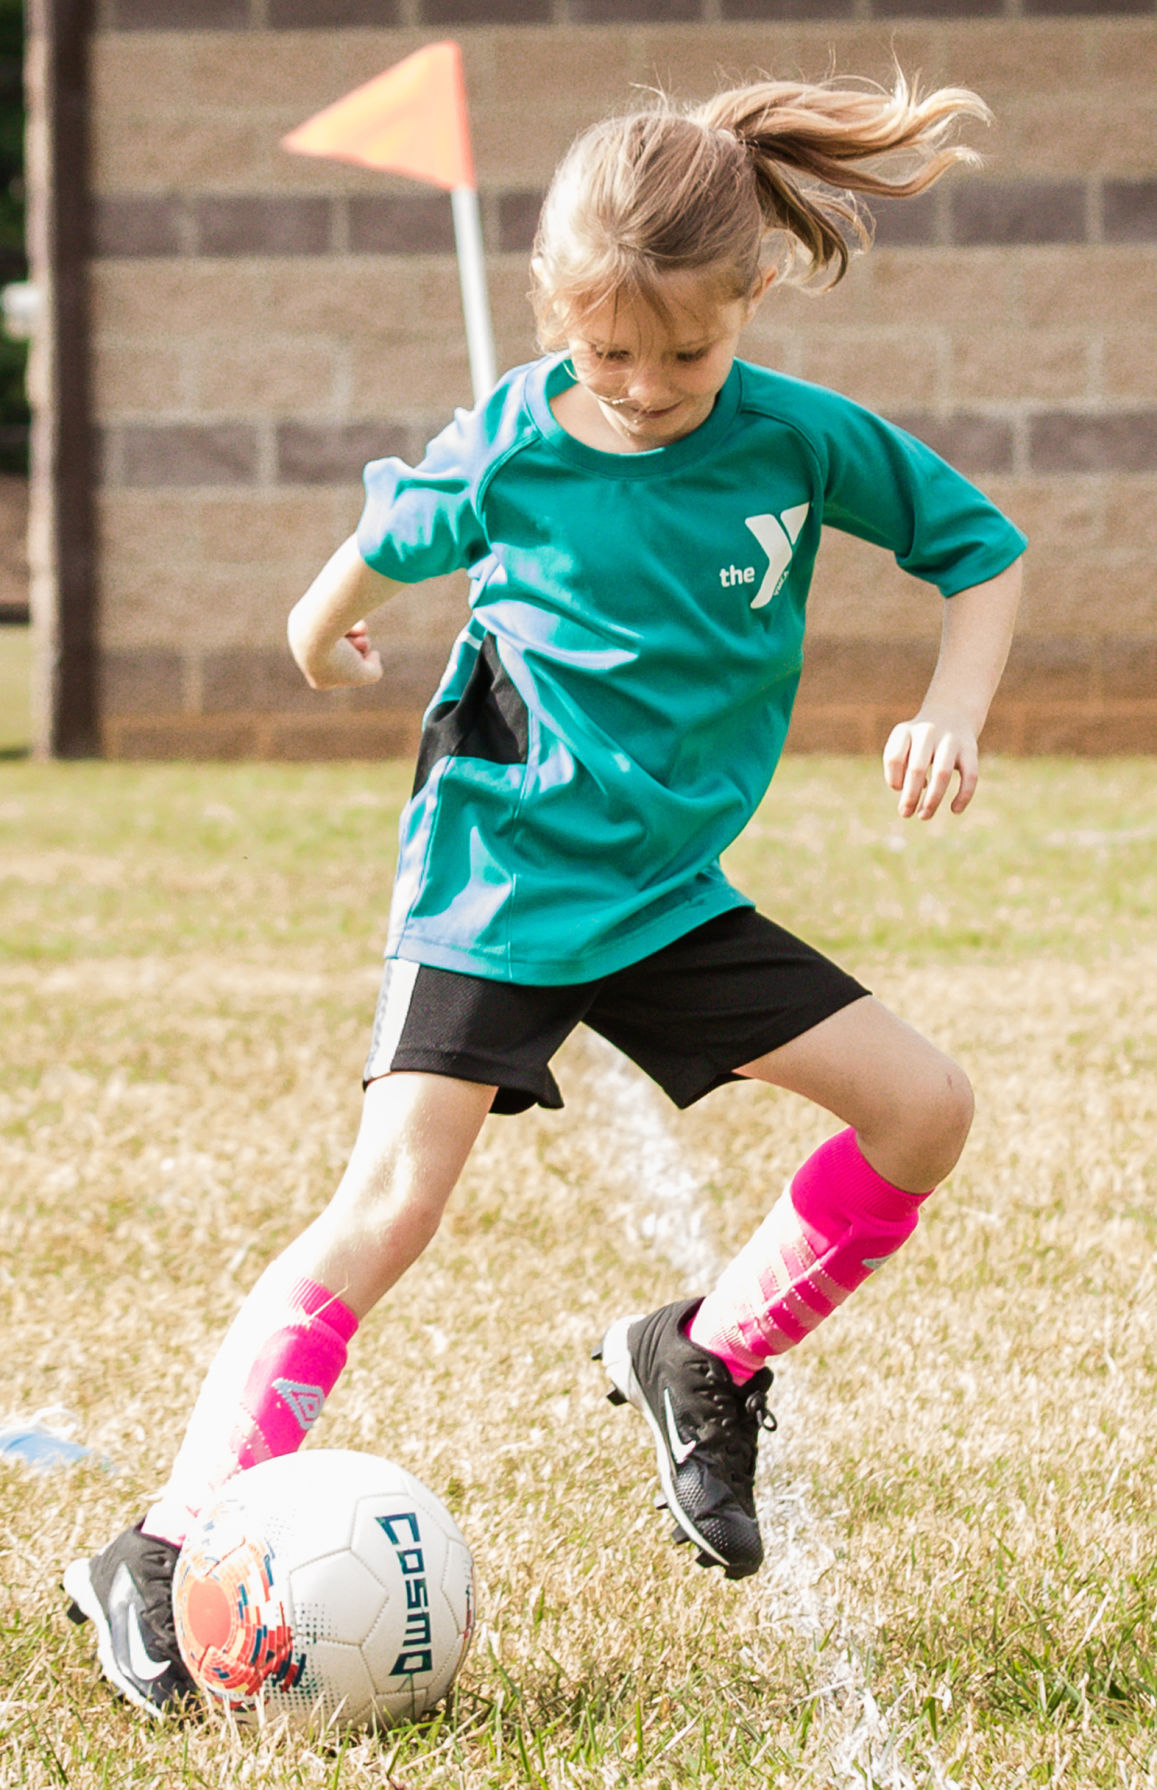 18 sports-youth sports photo page6.jpg